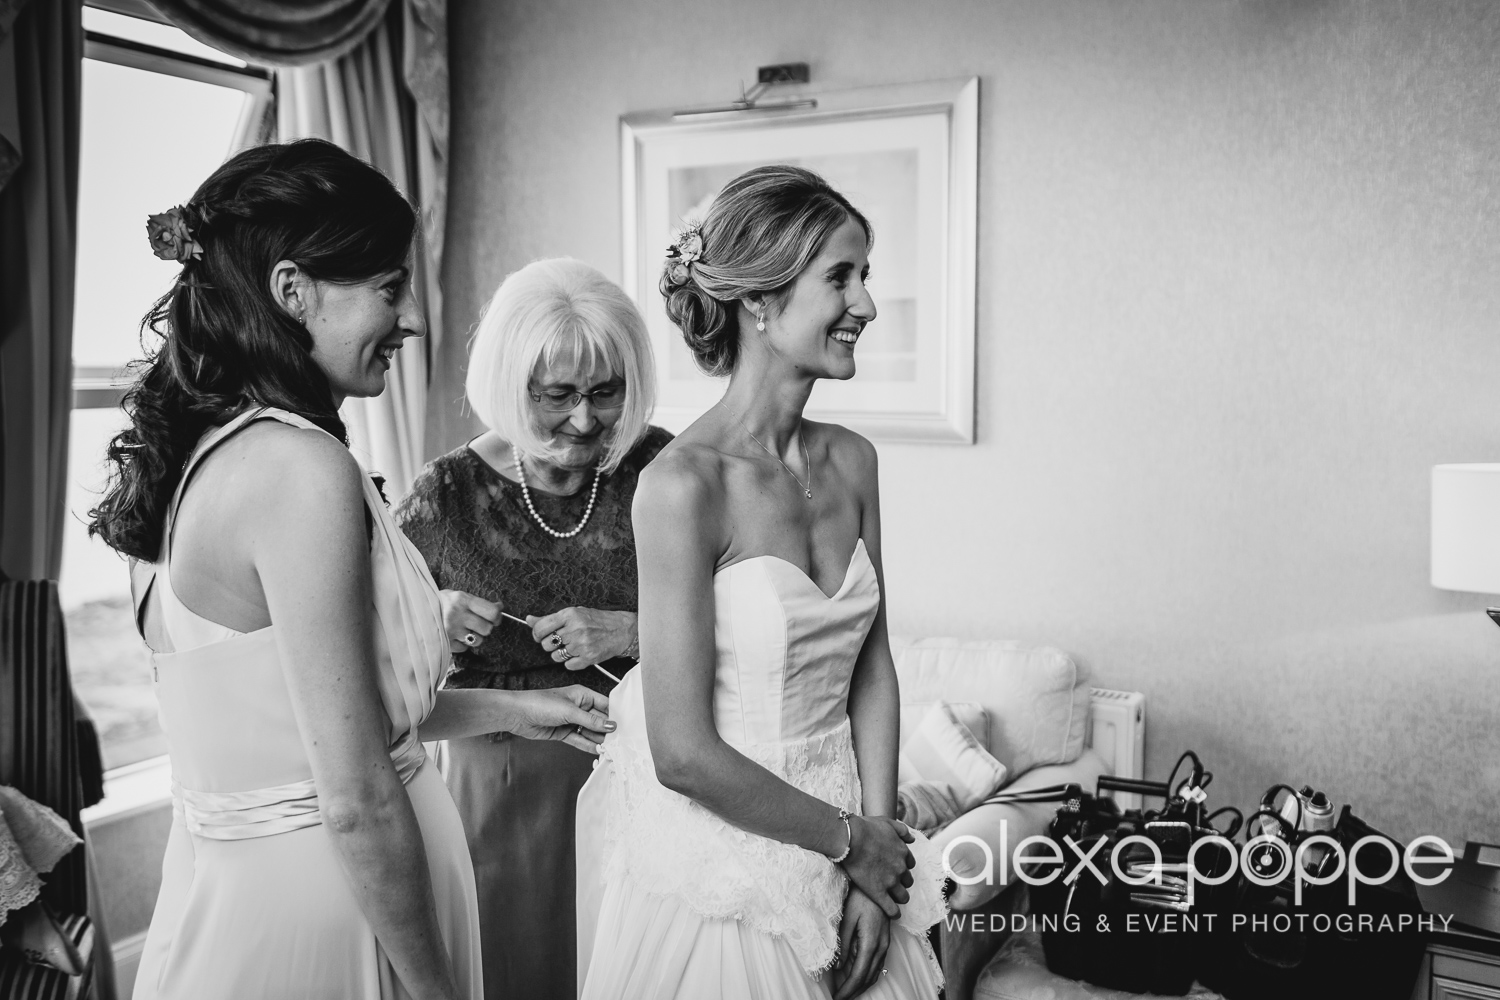 AZ_wedding_carlyonbay-14.jpg